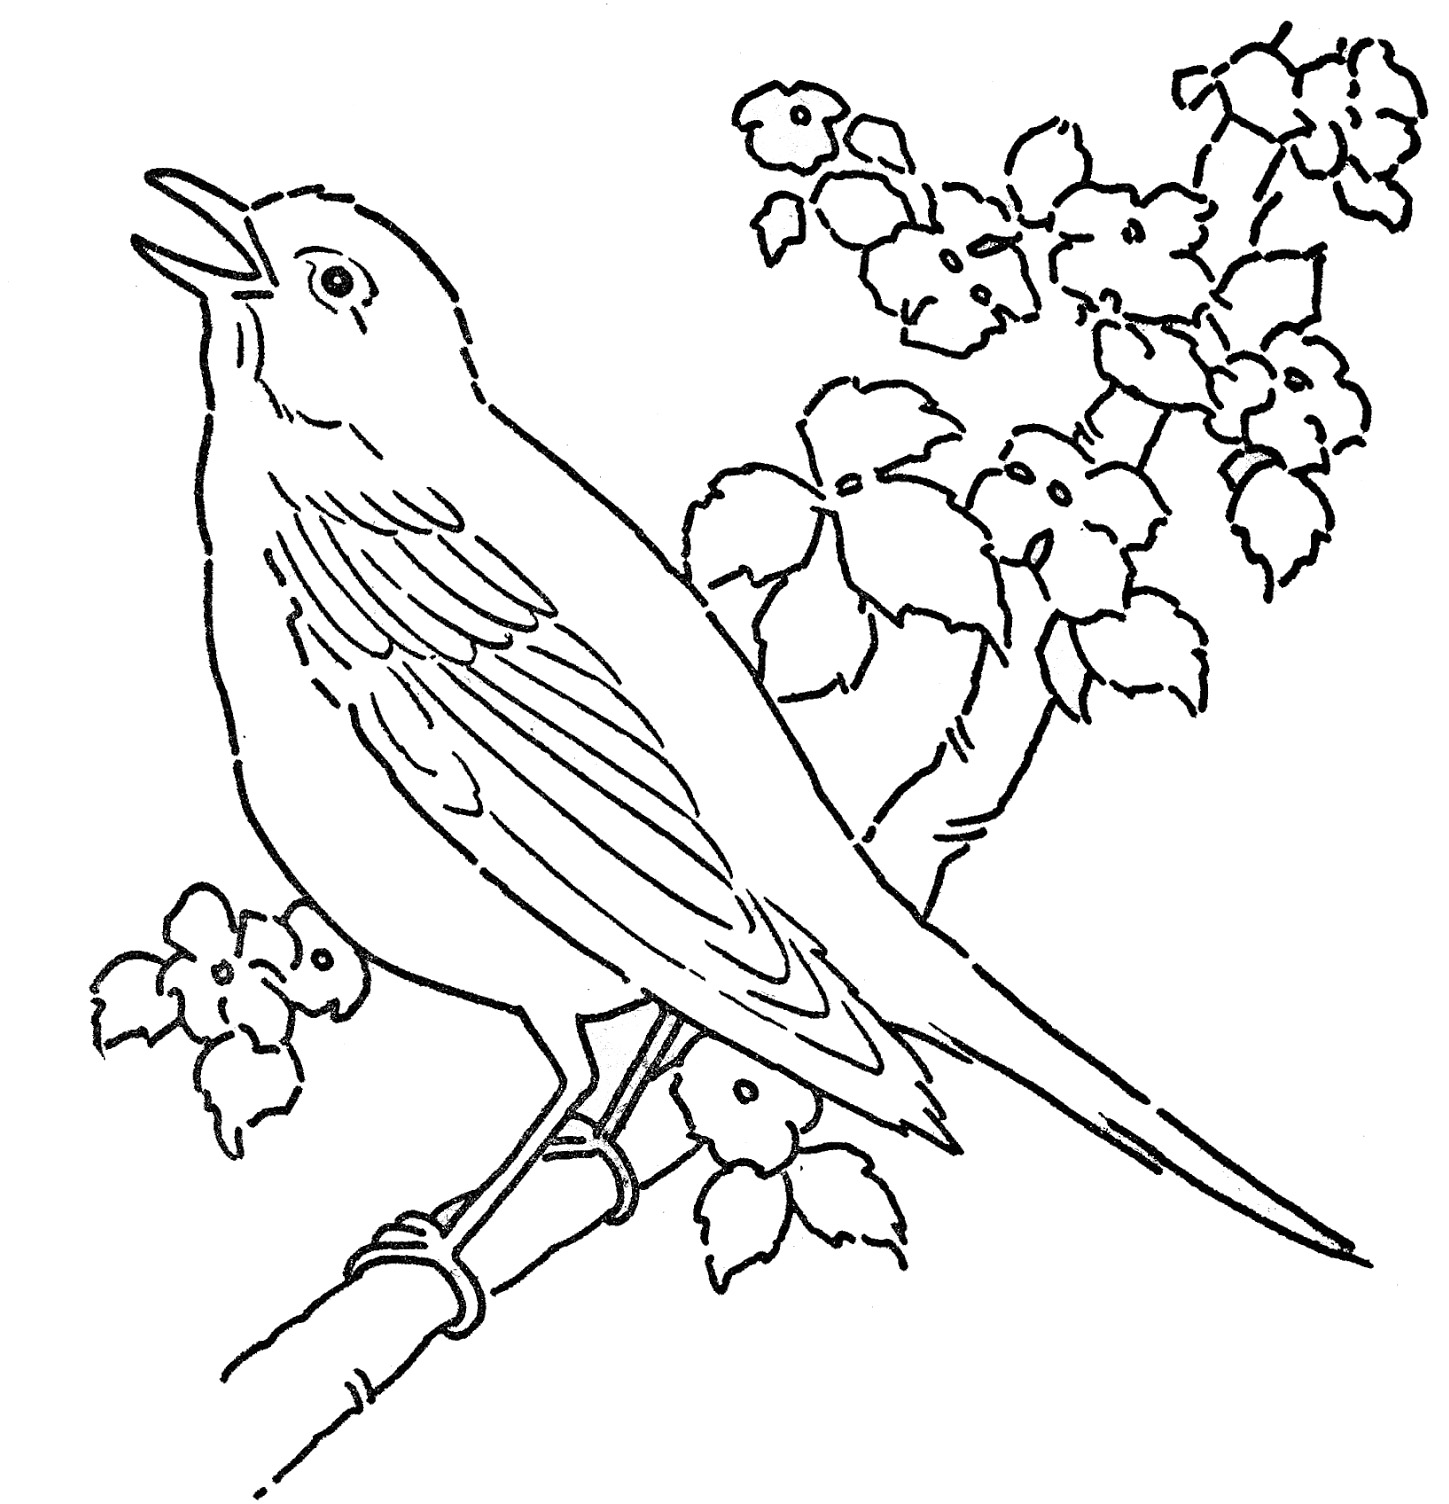 Enchanted creature Bird 20 Bird coloring pages Free